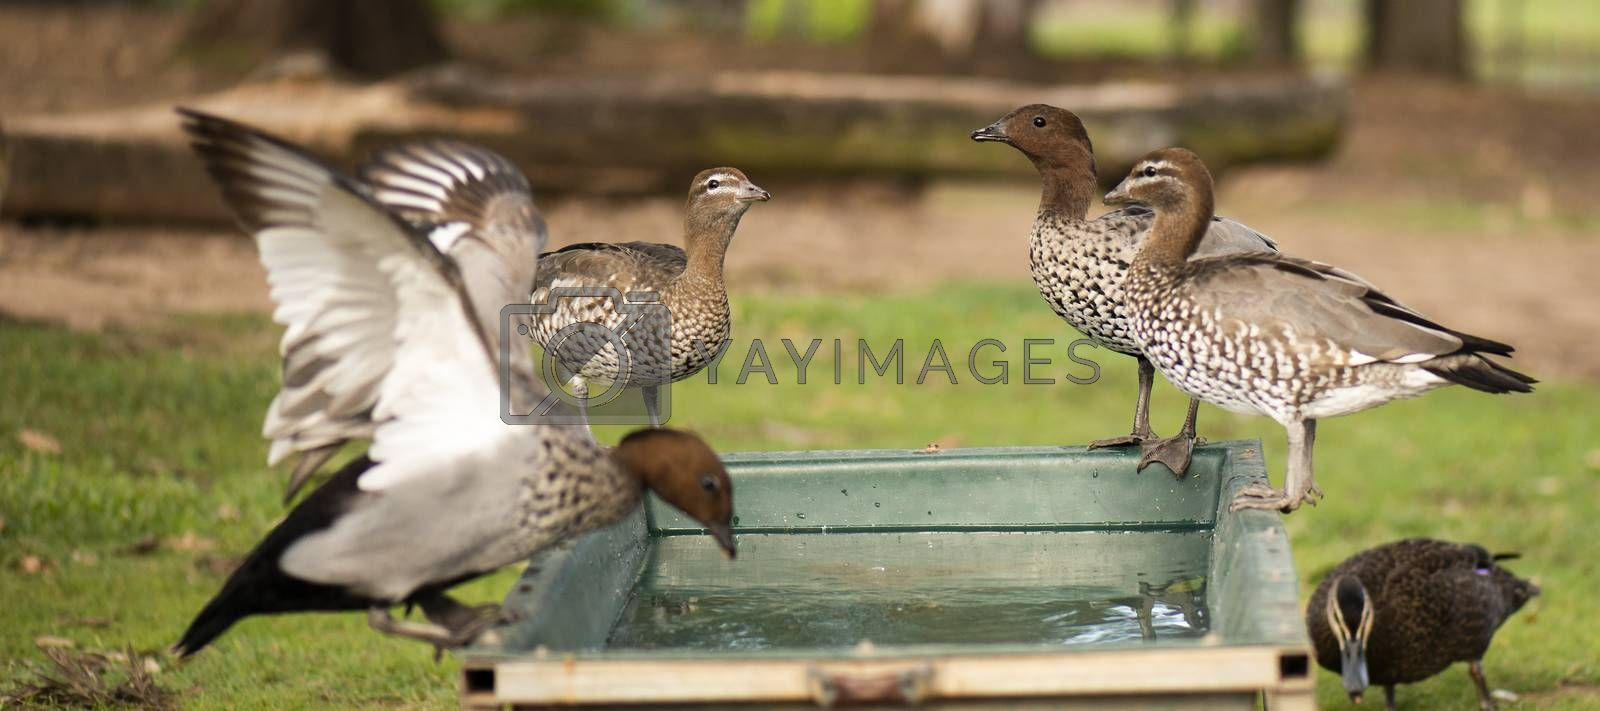 Ducks on a farm during the day drinking water.